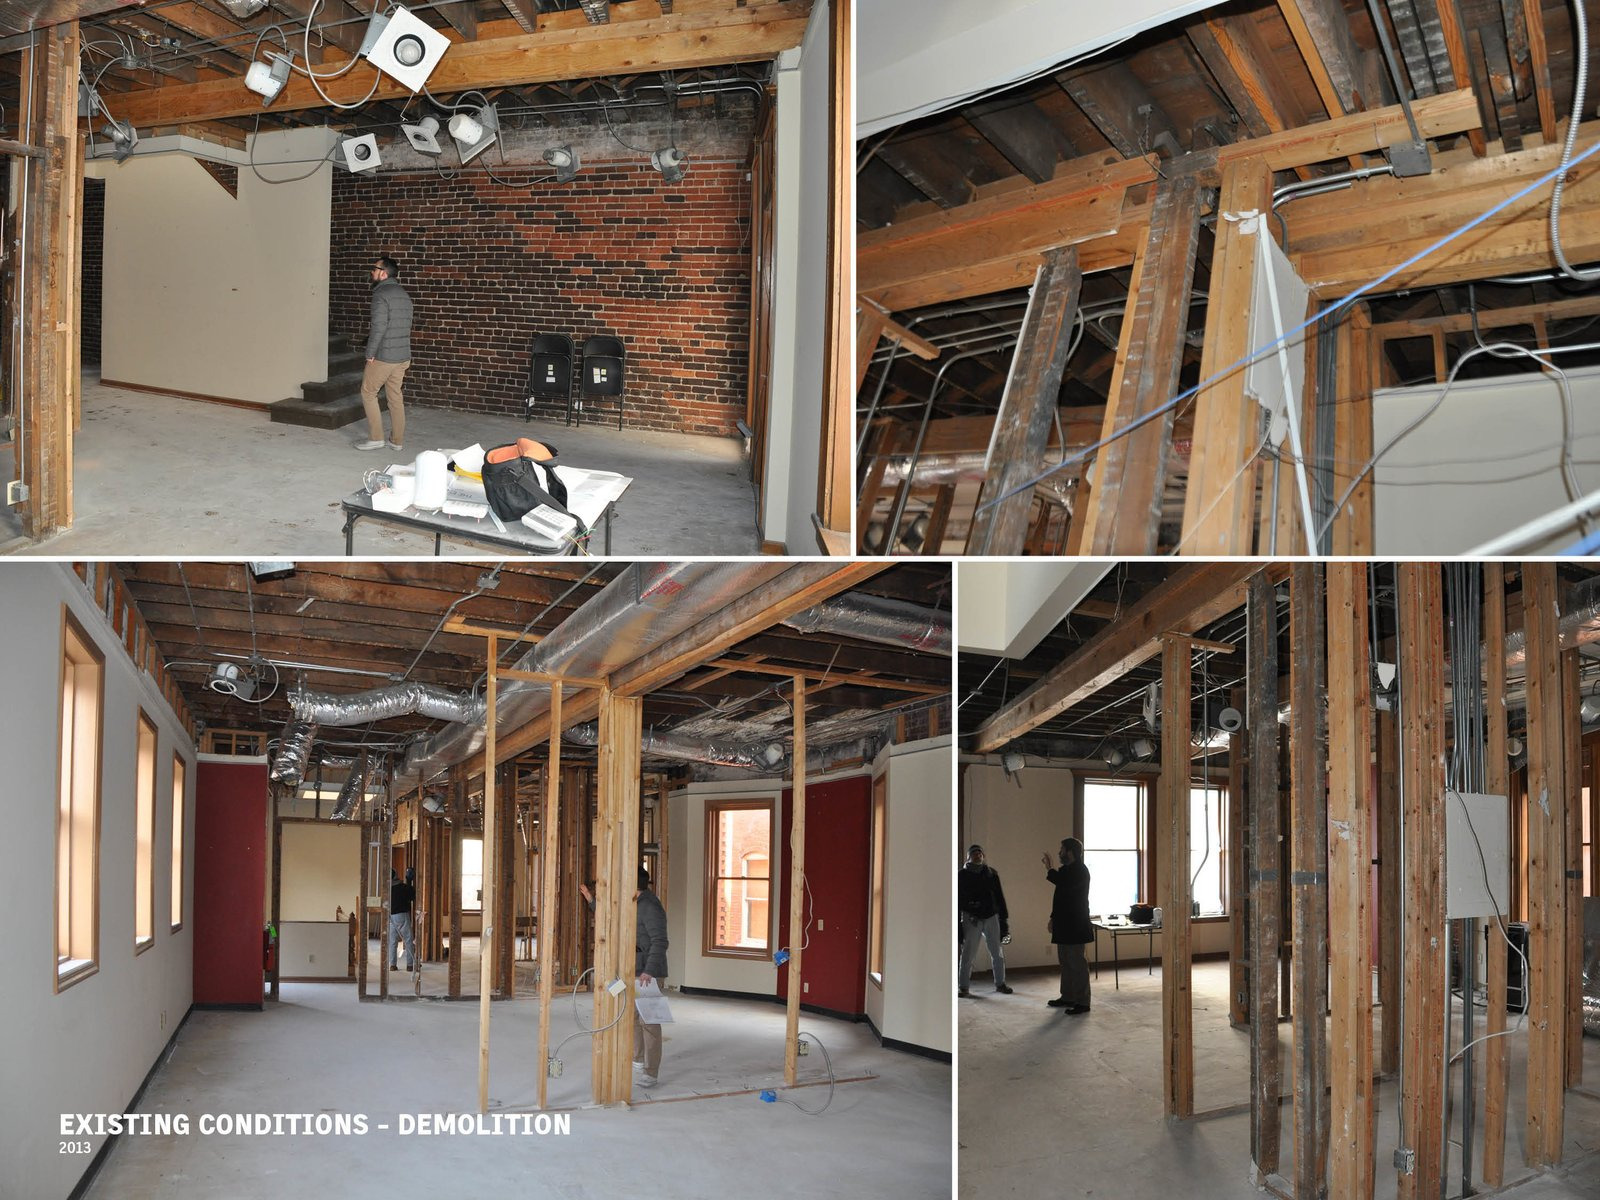 Existing Conditions - Demolition  The Historic Ely Building